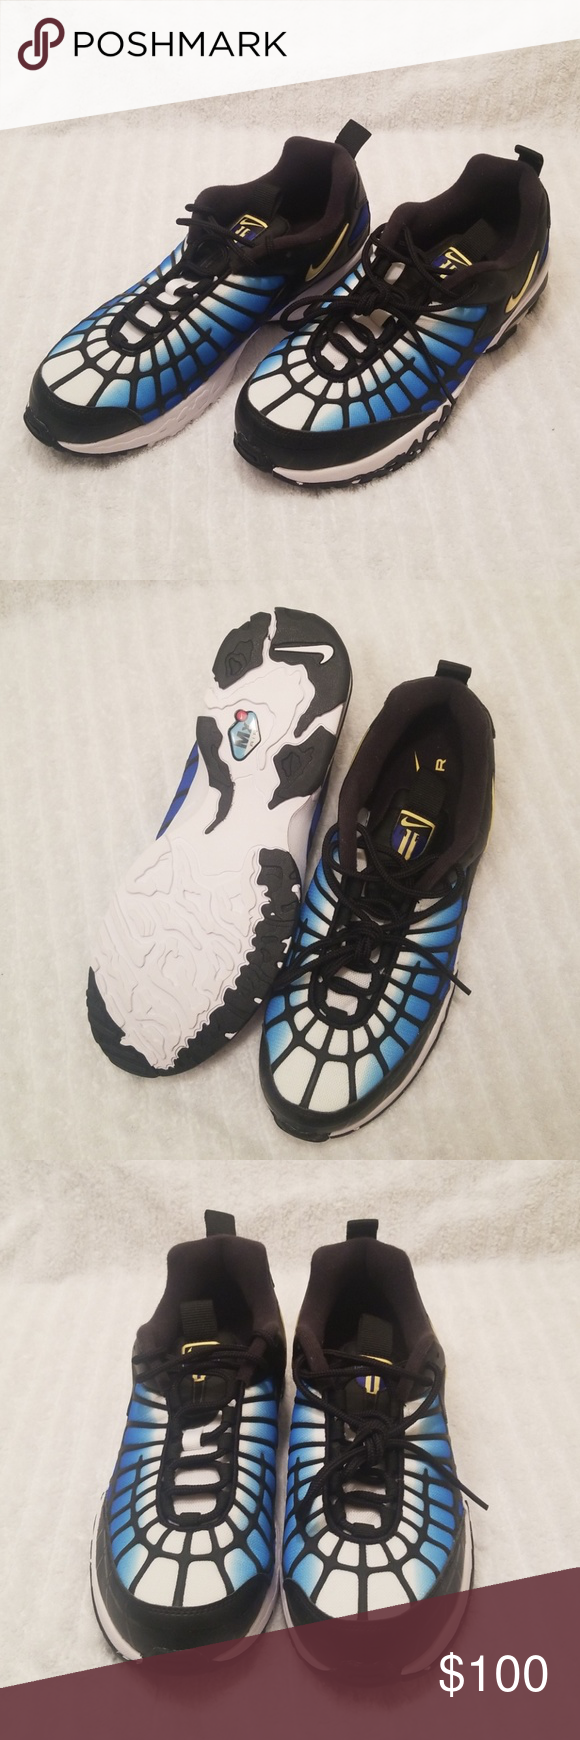 NWOT NIKE AIR MAX 120 RUNNING SHOES 819857-400 NWOT NIKE AIR MAX 120  RUNNING SHOES (HYPER BLUE BLACK WHITE) 819857-400 NEW SIZE 10.5 Nike Shoes  Athletic ... a362c4725